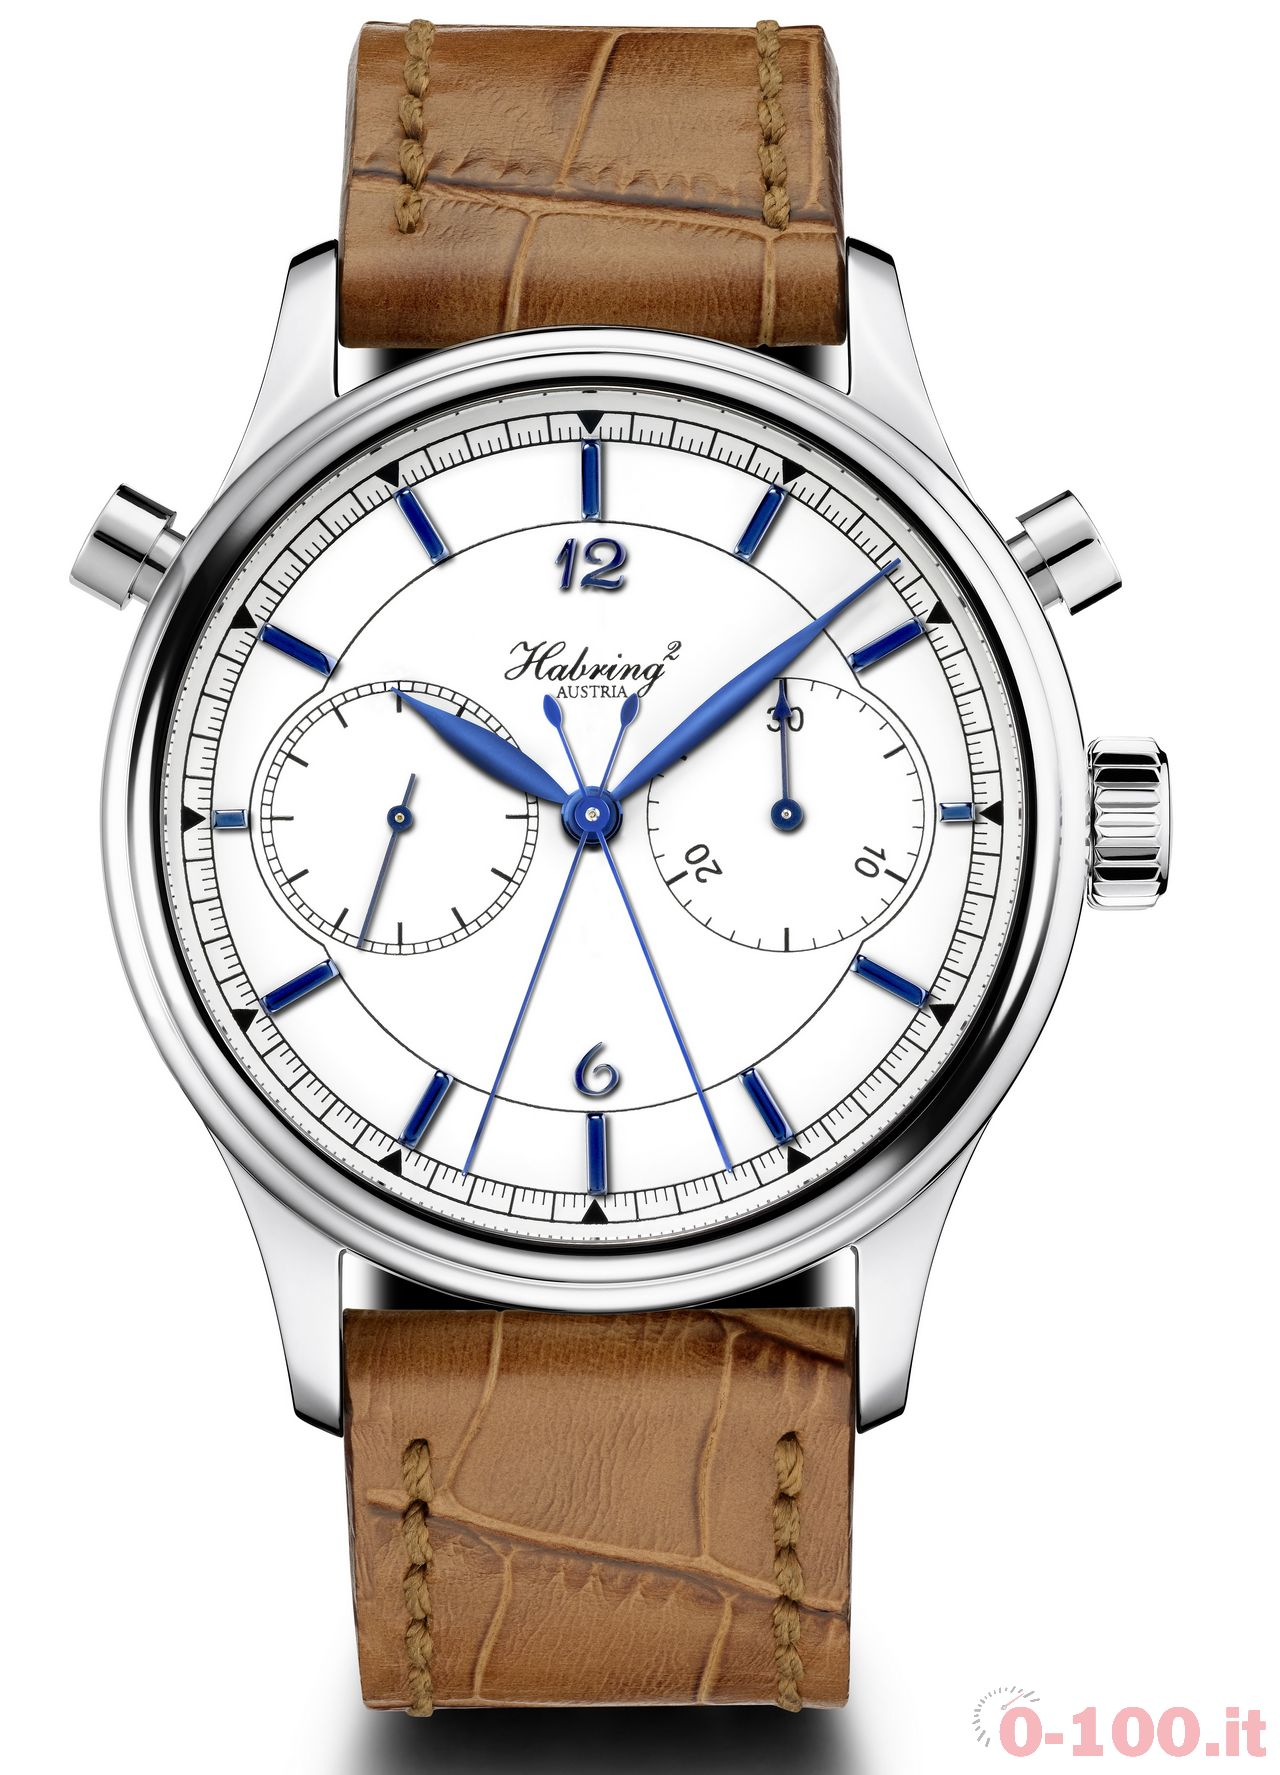 habring²-splitsecond-chronograph-limited-edition-horlogerie-suisse-com_0-1001